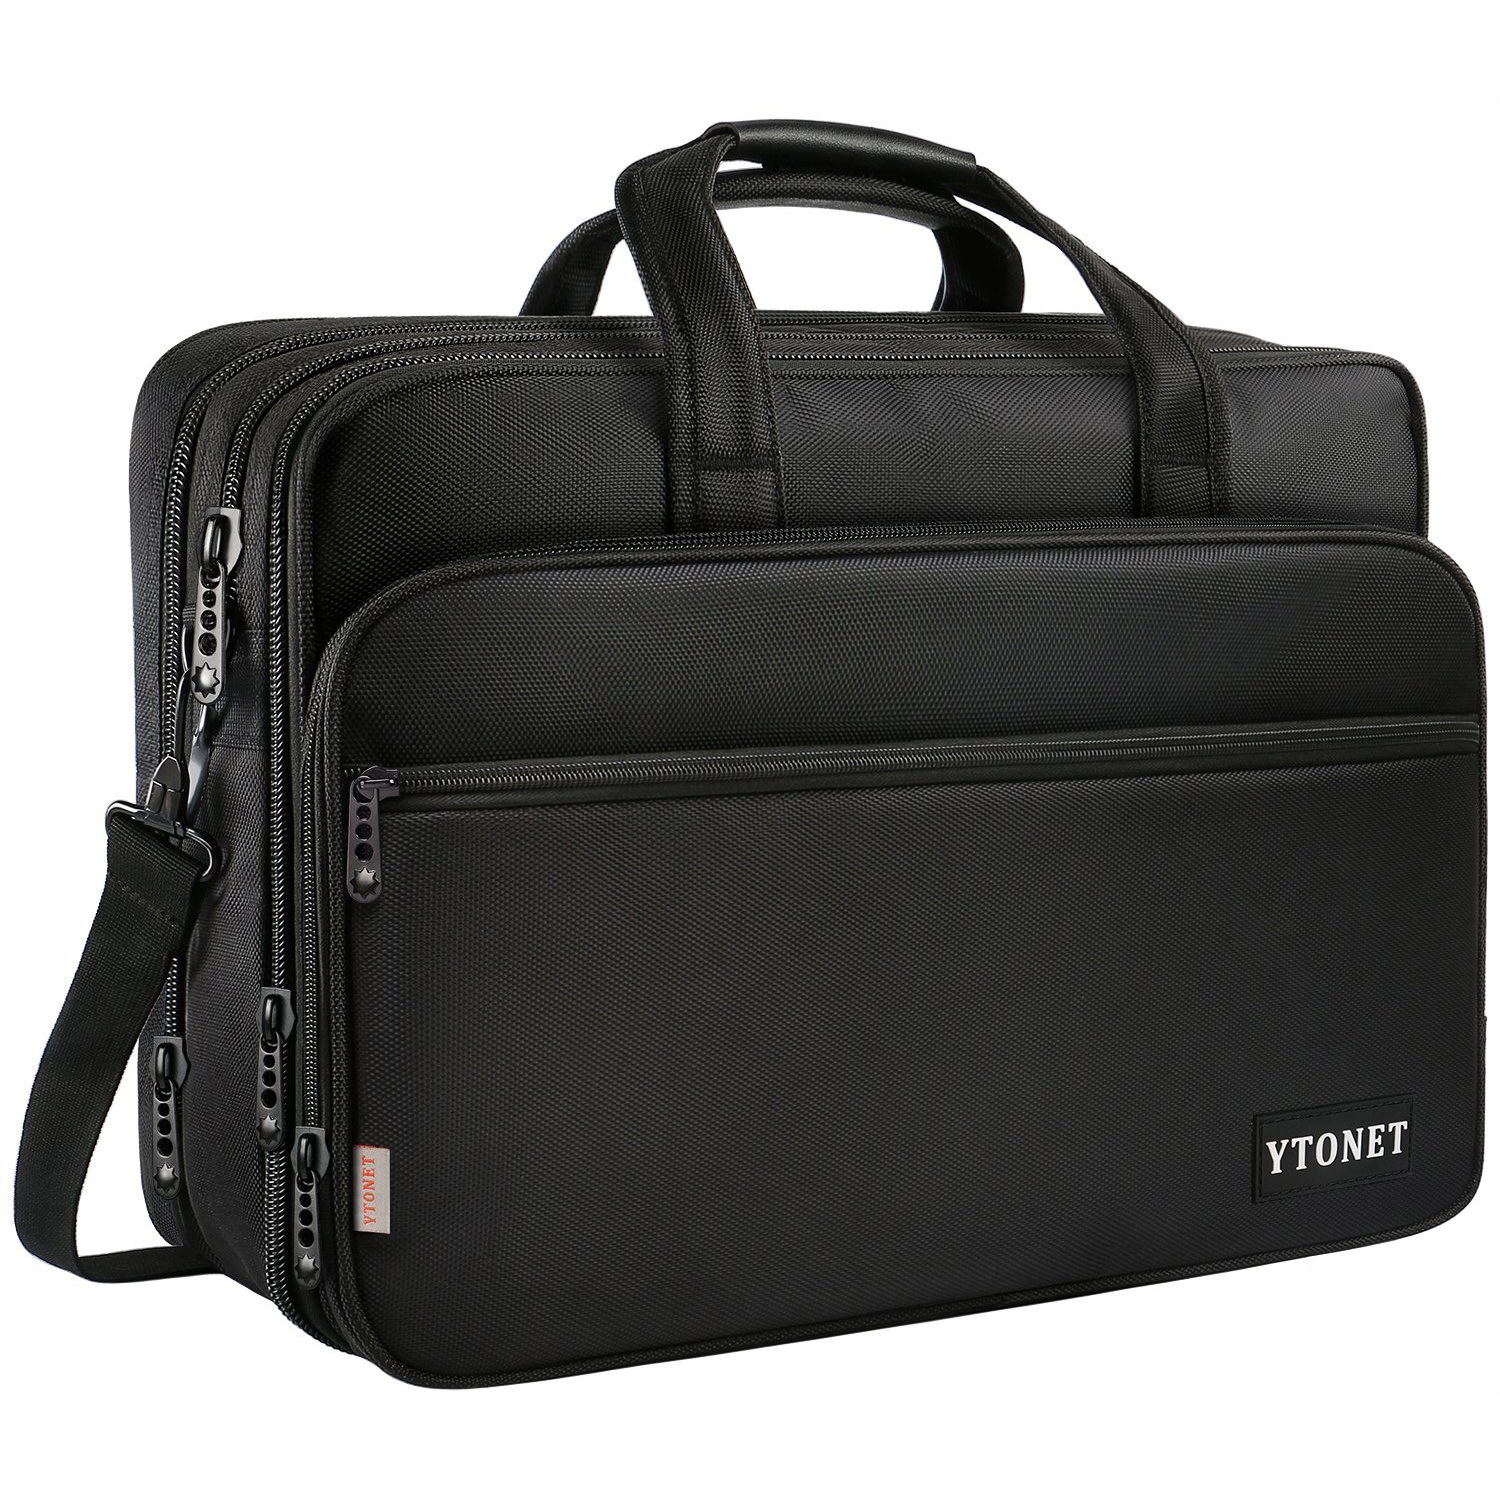 17 inch Laptop Briefcase, Travel Expandable Business Laptop Bag with Multi-compartment, Water Resistant Nylon Shoulder Messenger Bag Laptop Case for Men and Women, Fits 15.6 Inch Laptop/Tablet